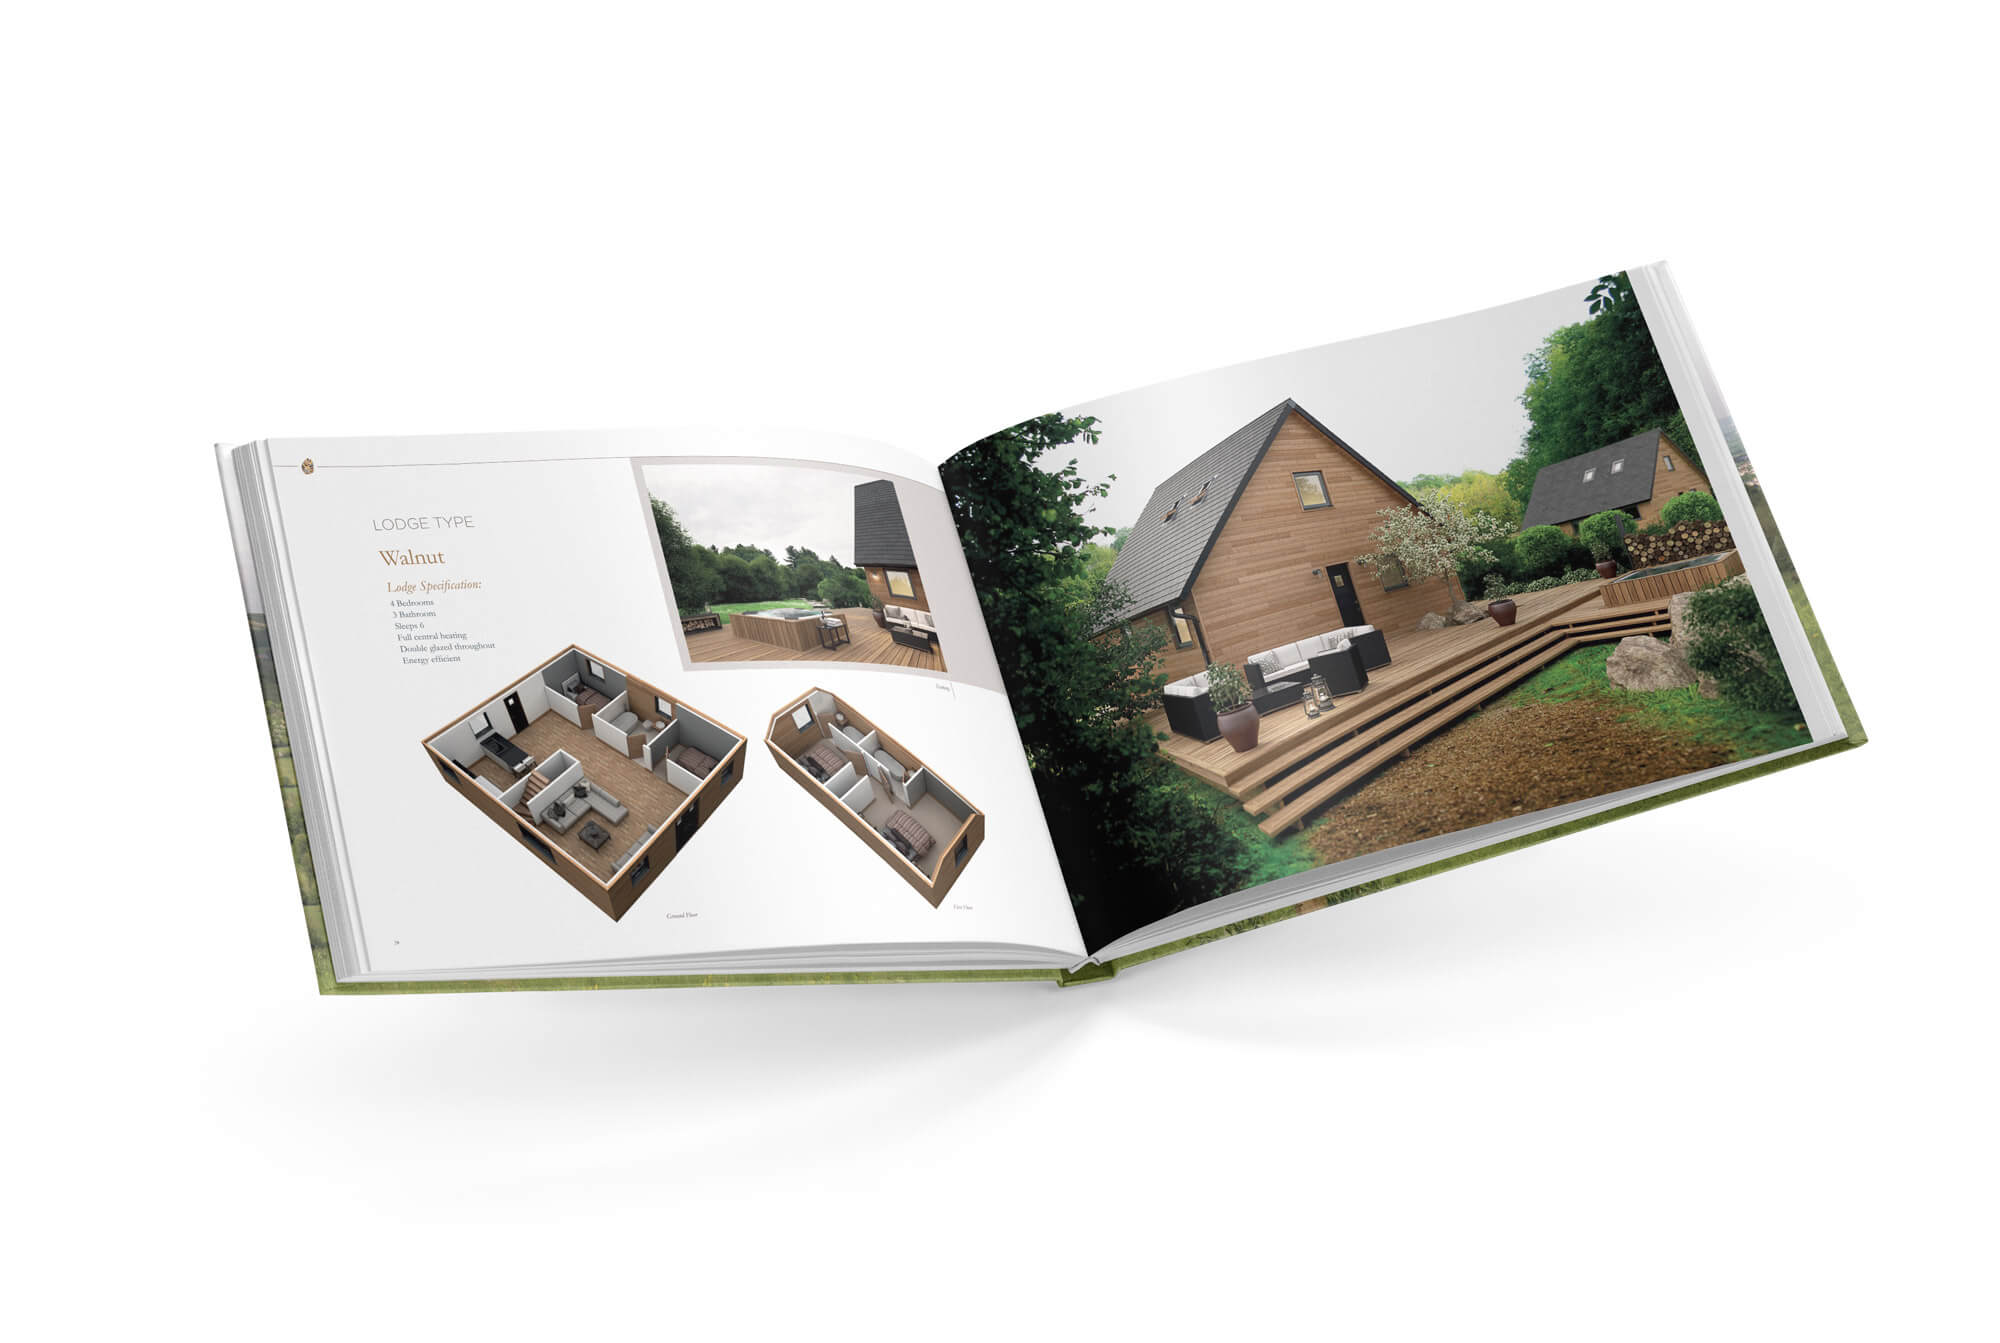 staycation-lodges-brochure-5